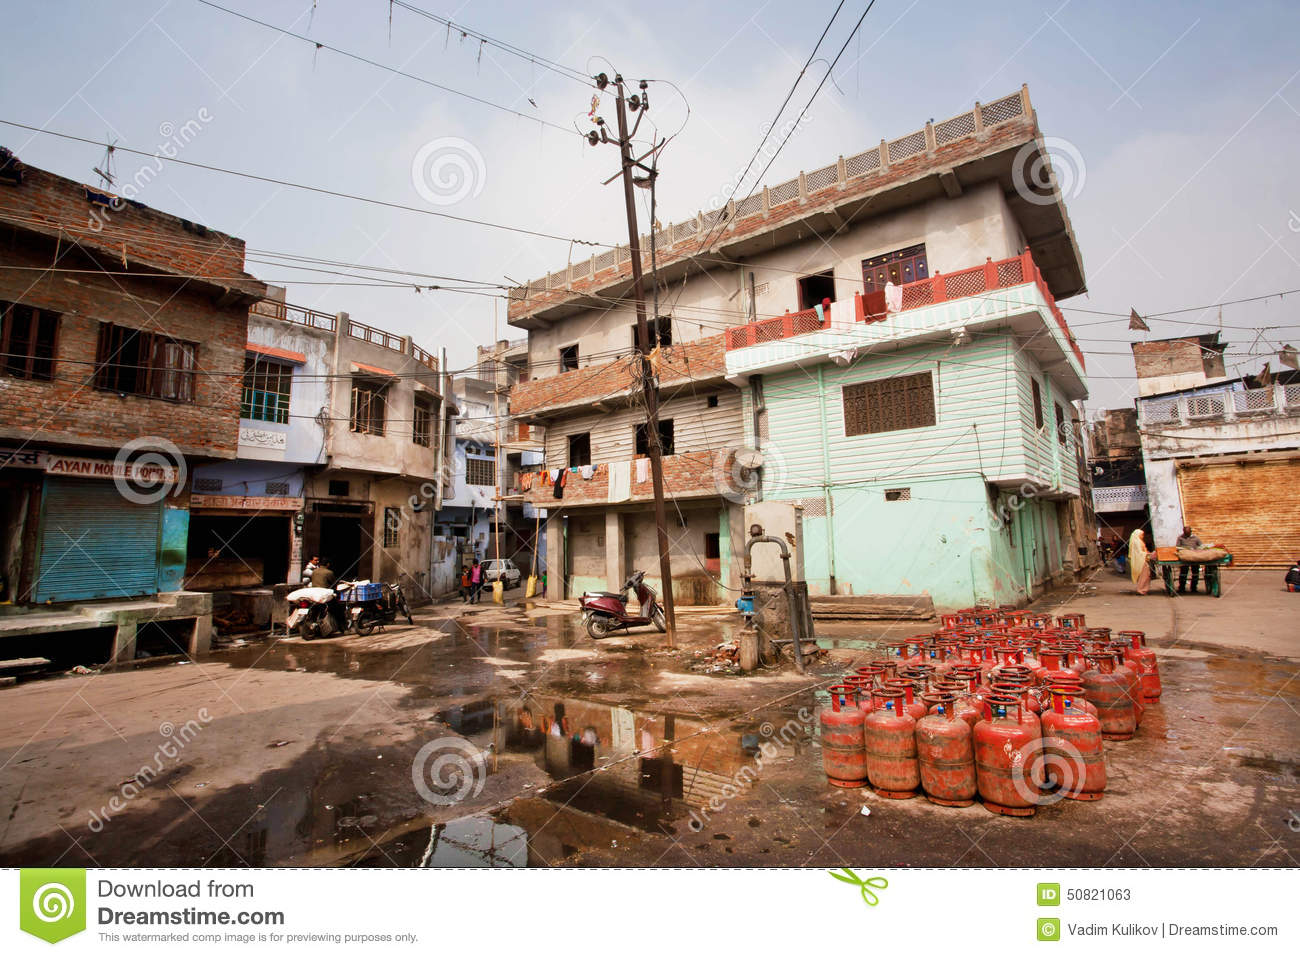 Gas Cylinders Put On A Dirty Street With Old Houses Of